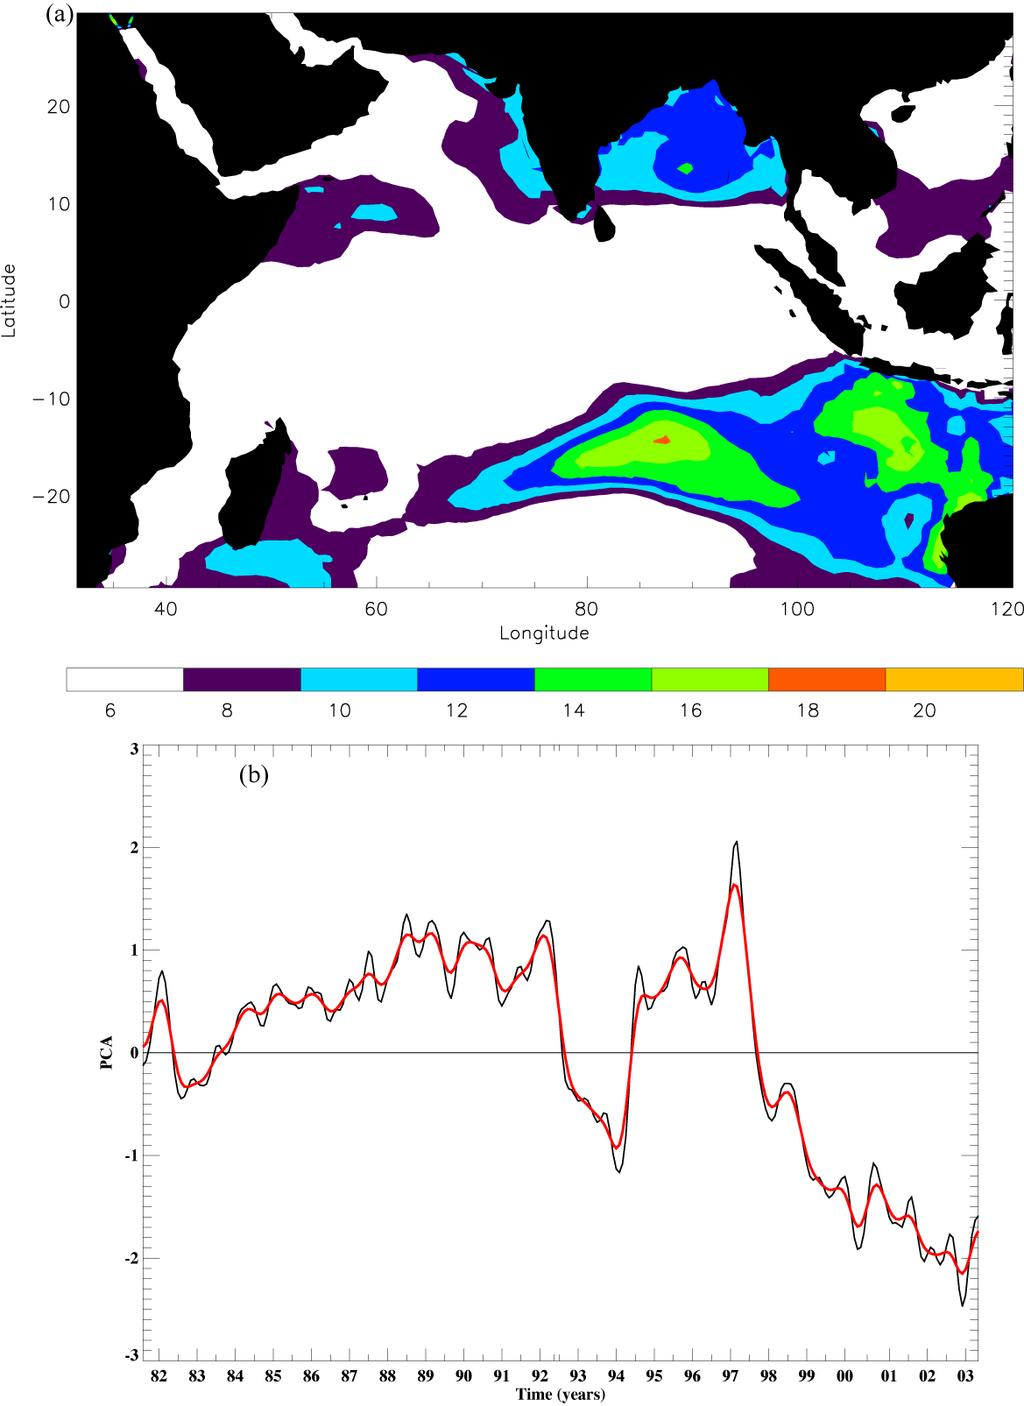 FIG. 8 First EOF (41.3% of the variance) of latent heat flux for the Indian Ocean.